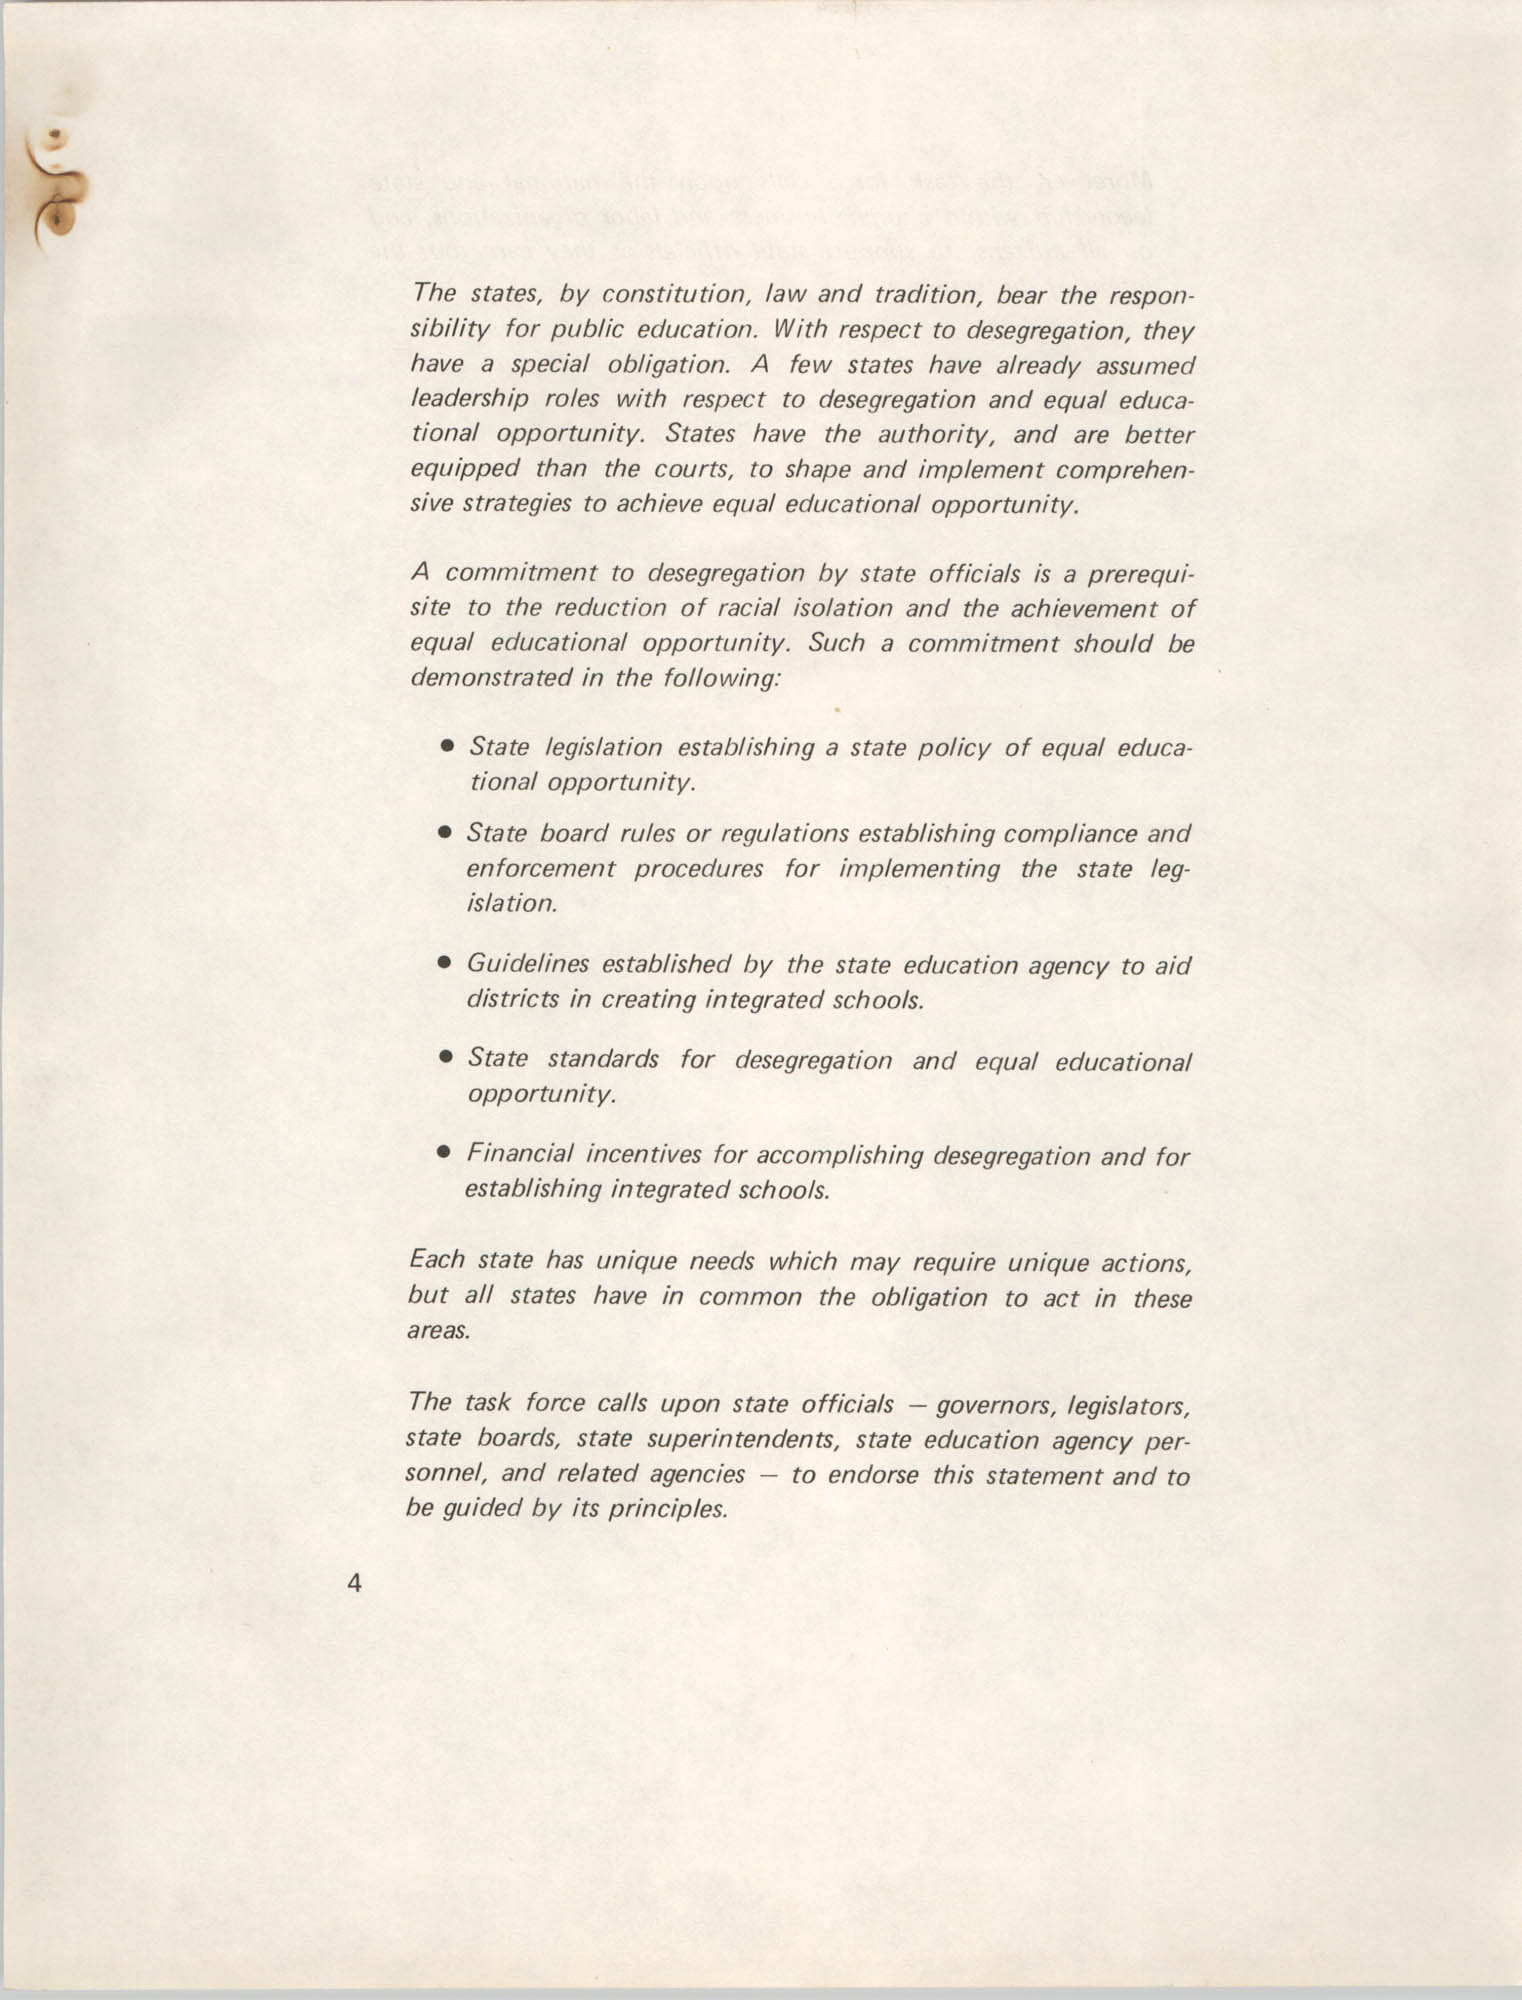 Position Statement on Desegregation, National Task Force on Desegregation Strategies, Page 4